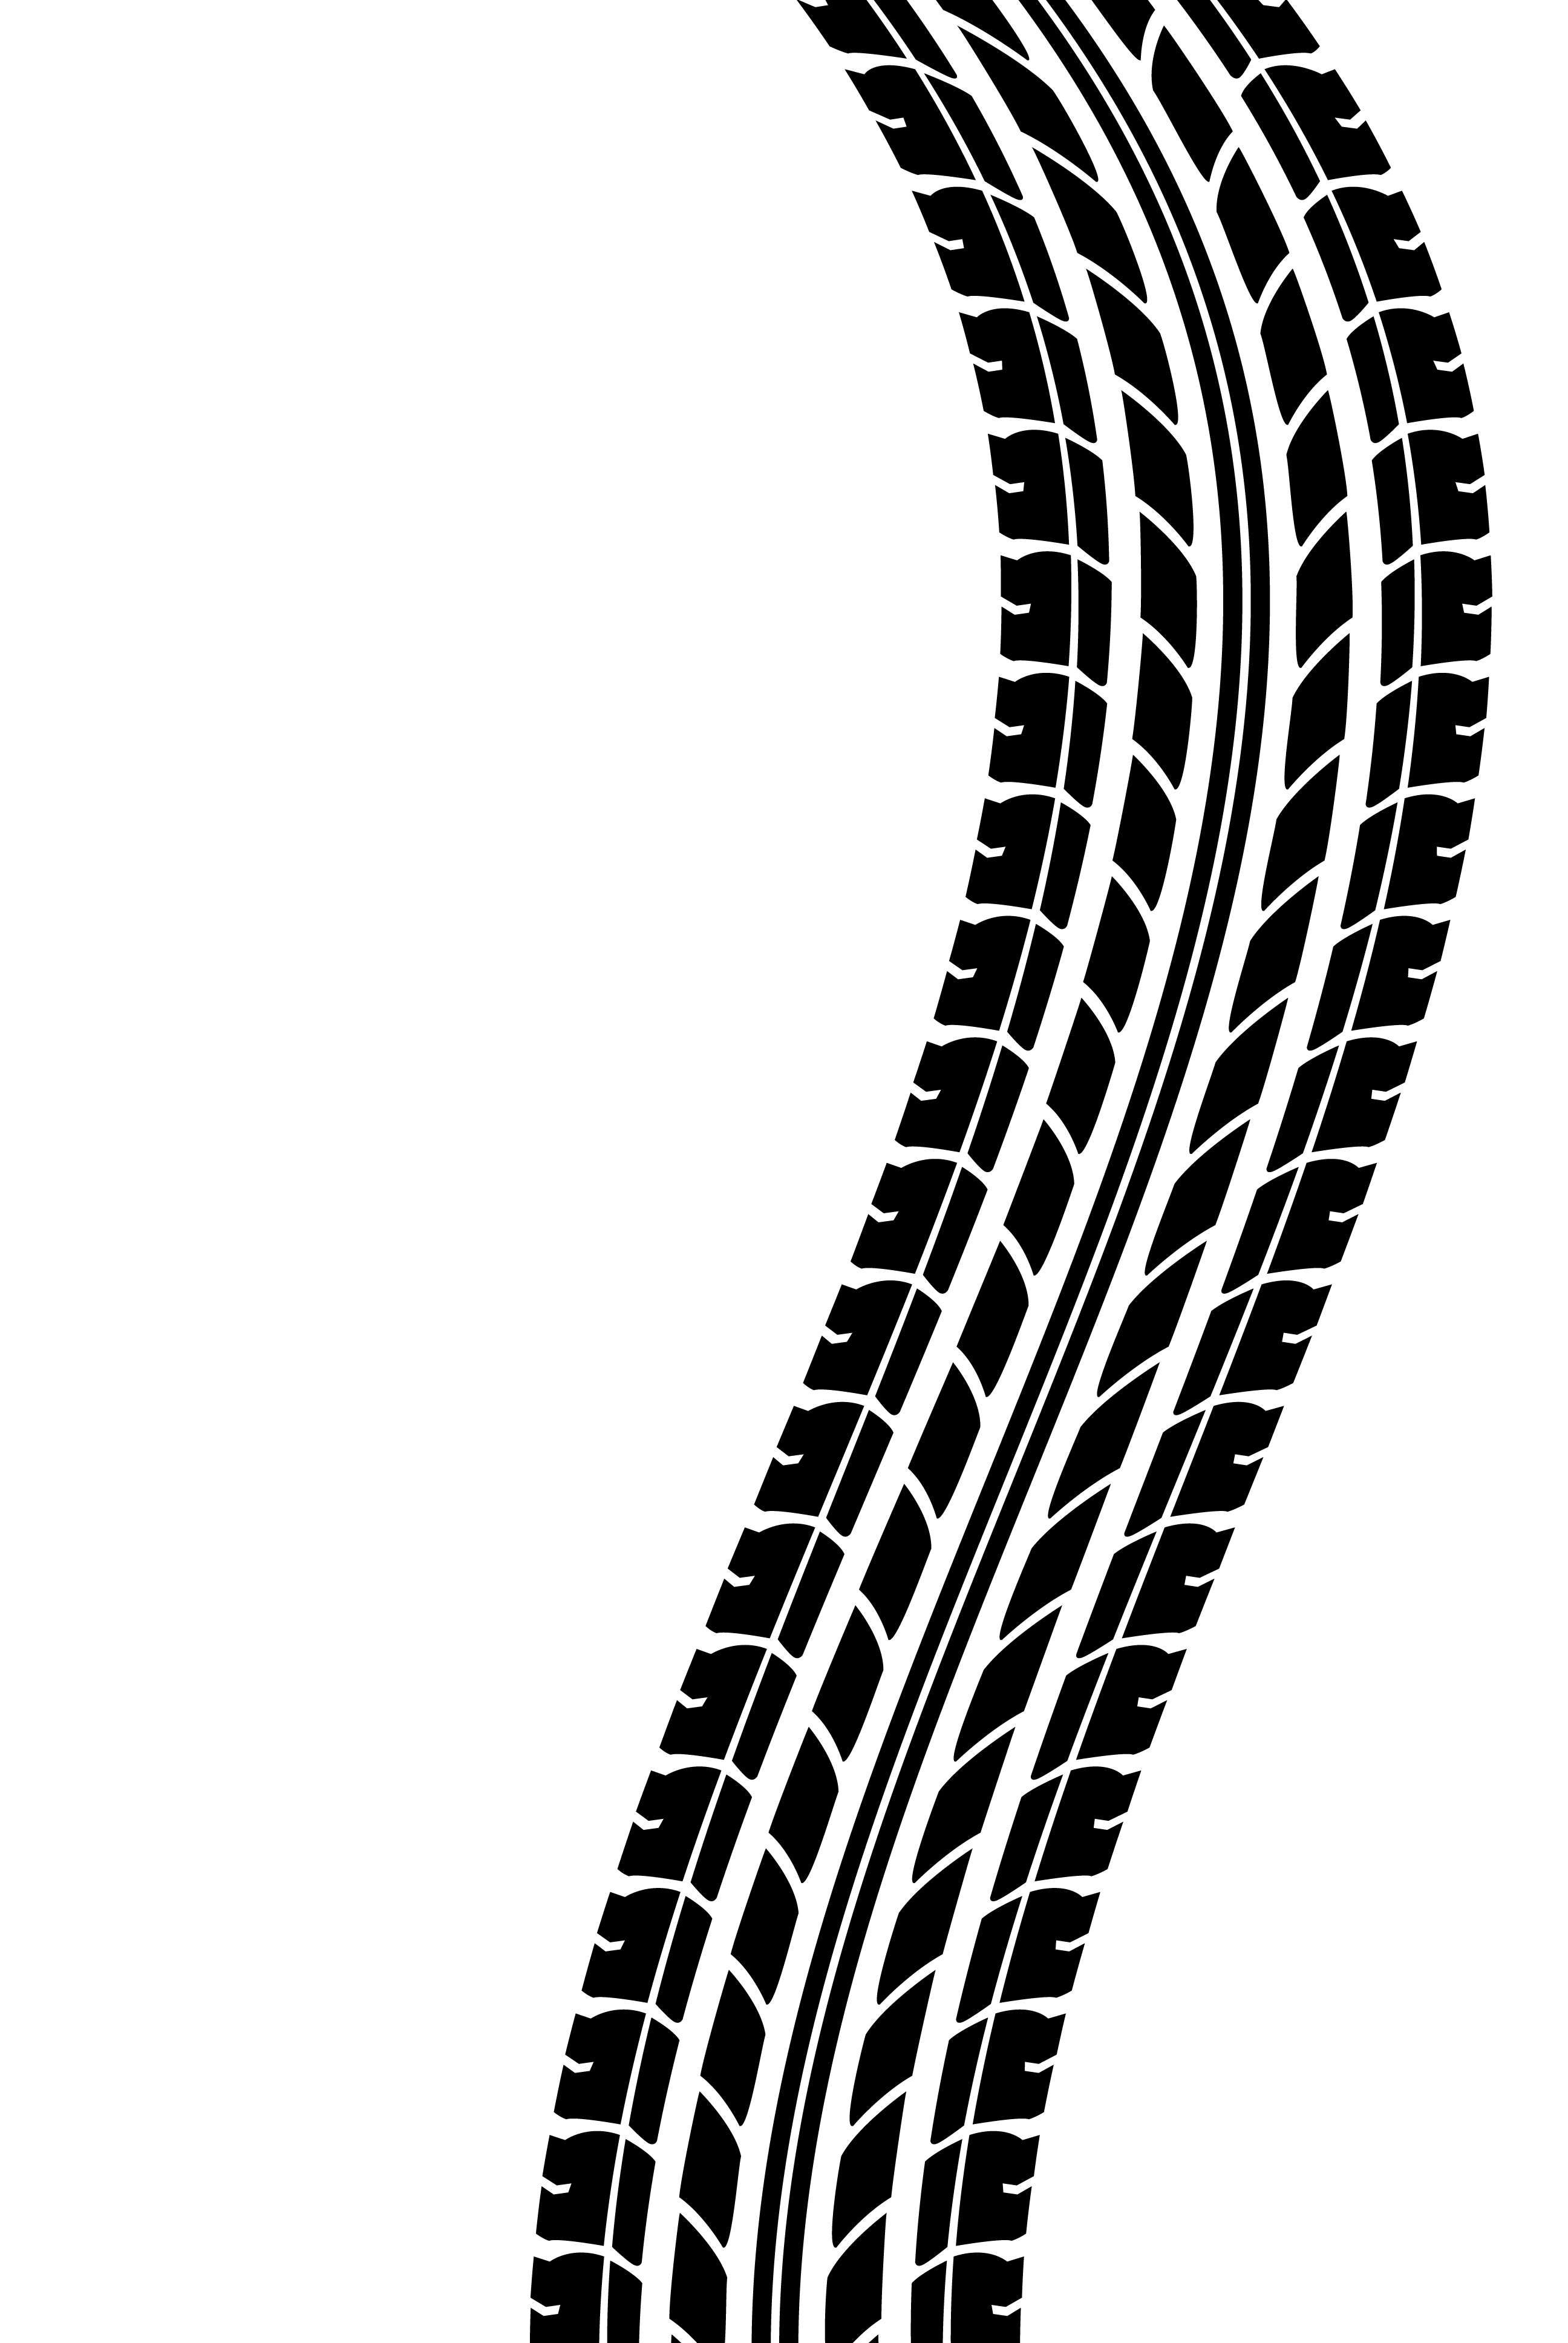 Tire tread patterns clipart png stock Tire tread clip art - ClipartFox png stock